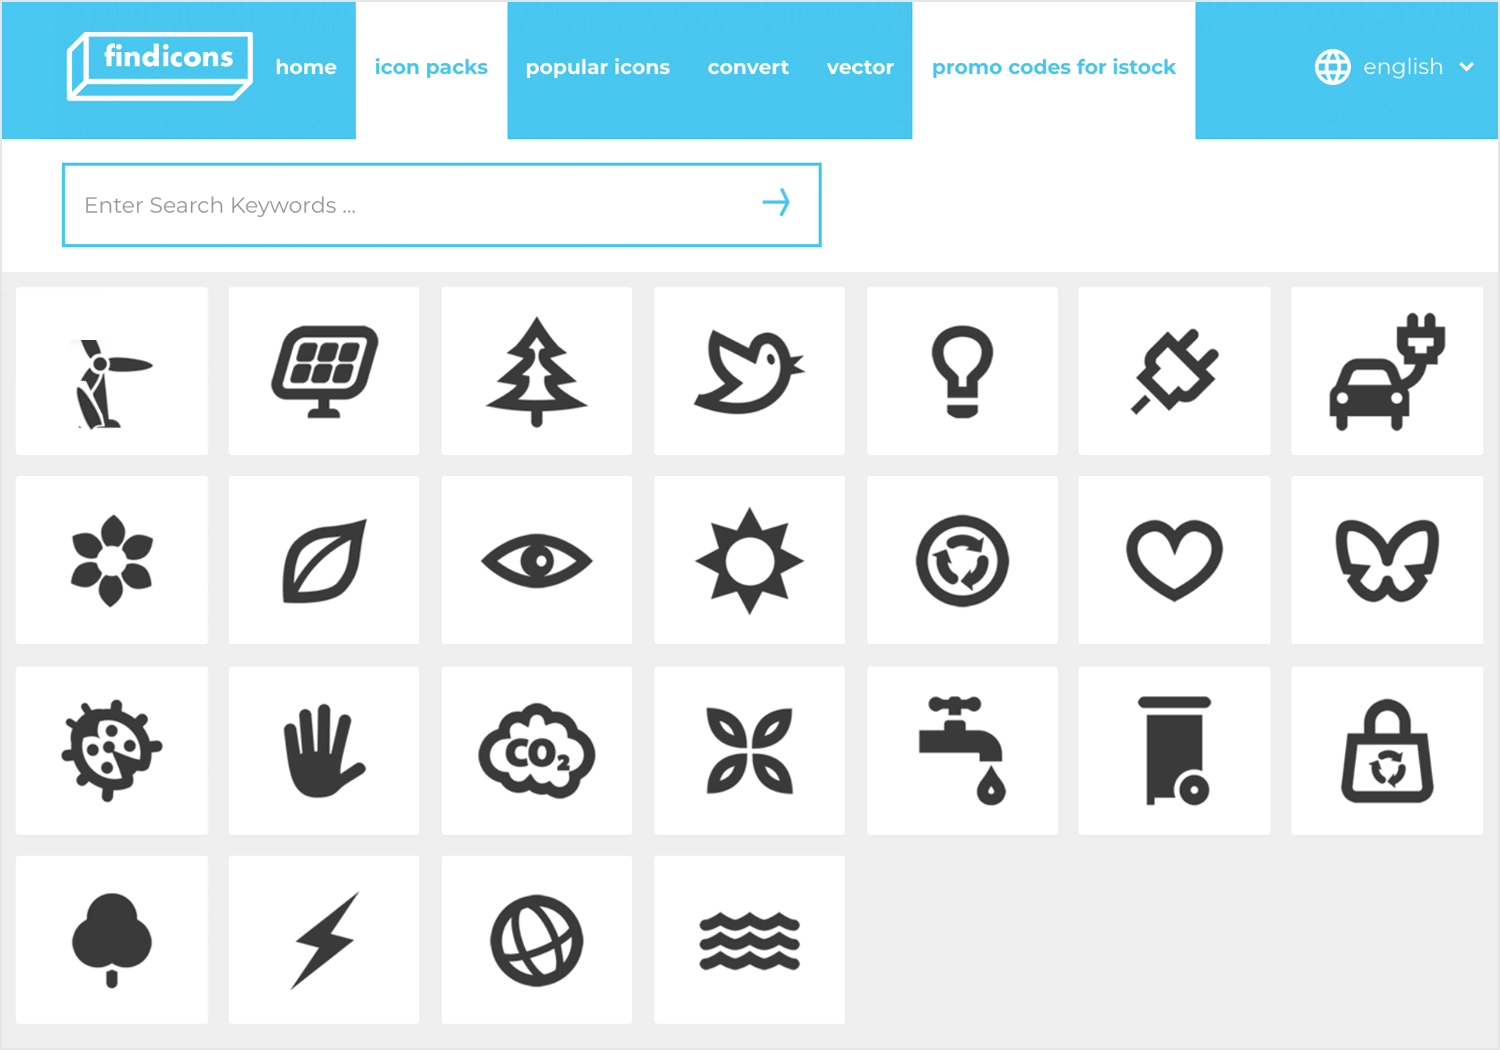 Free app icons to download - Findicons